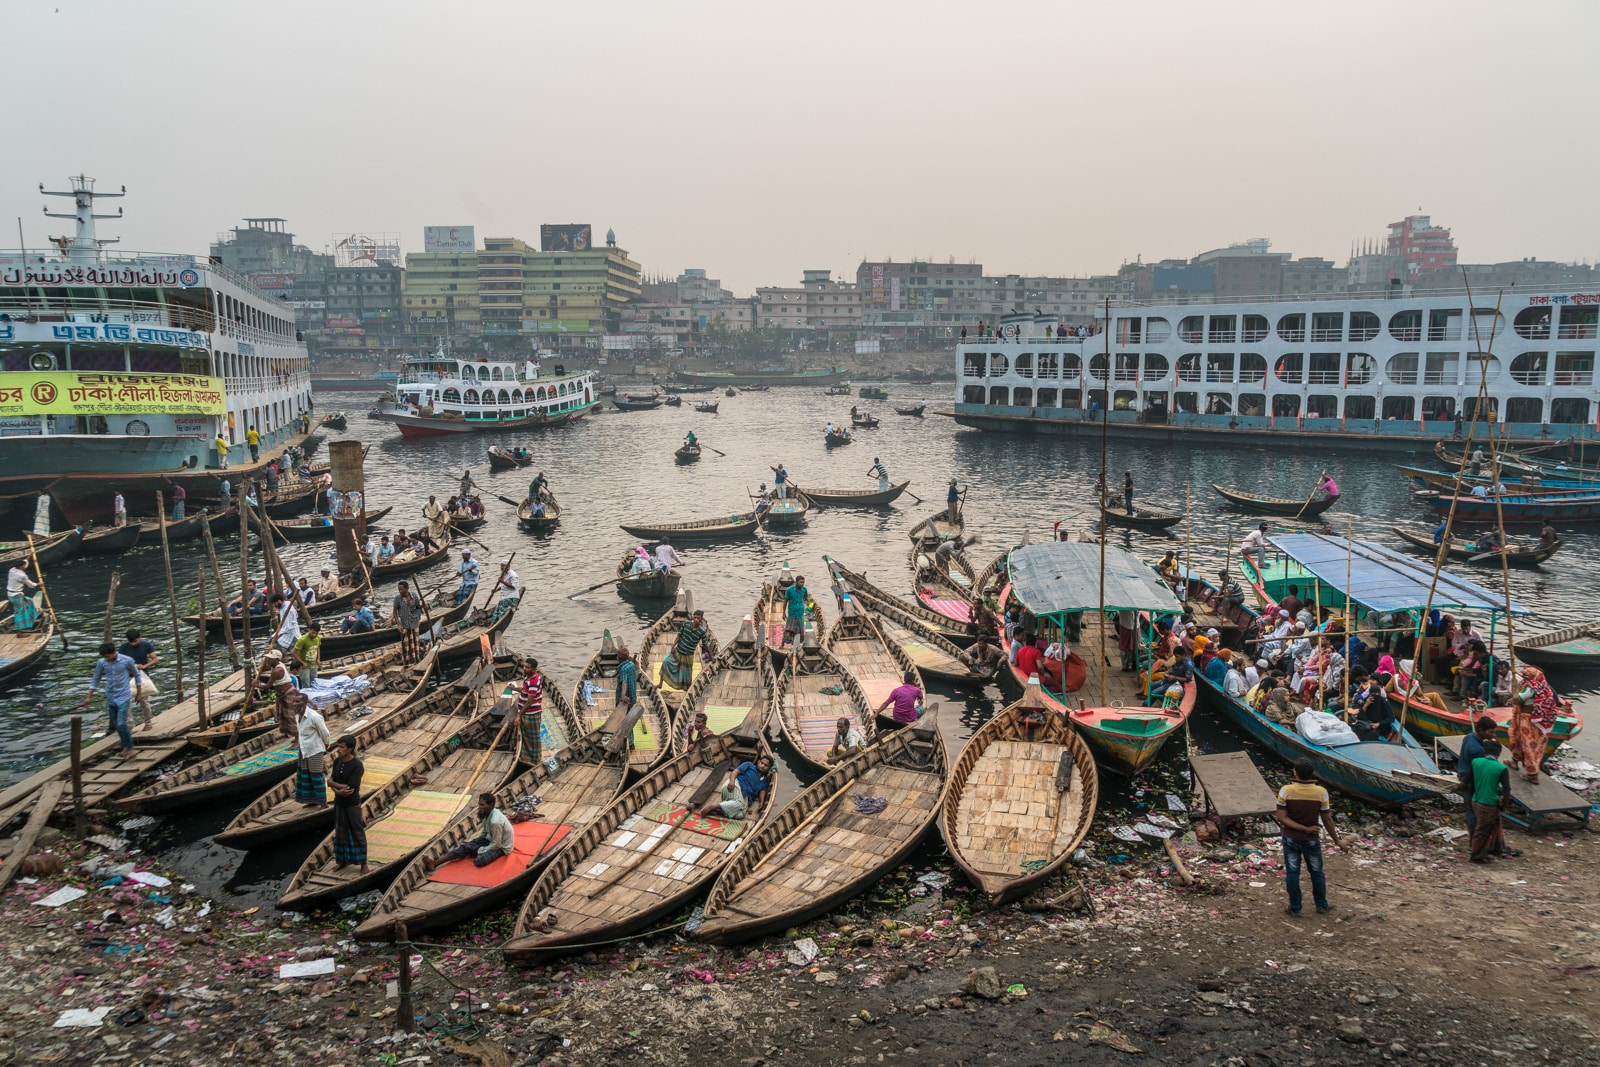 Backpacking Bangladesh travel guide - Chaos at Sadarghat in Dhaka - Lost With Purpose travel blog